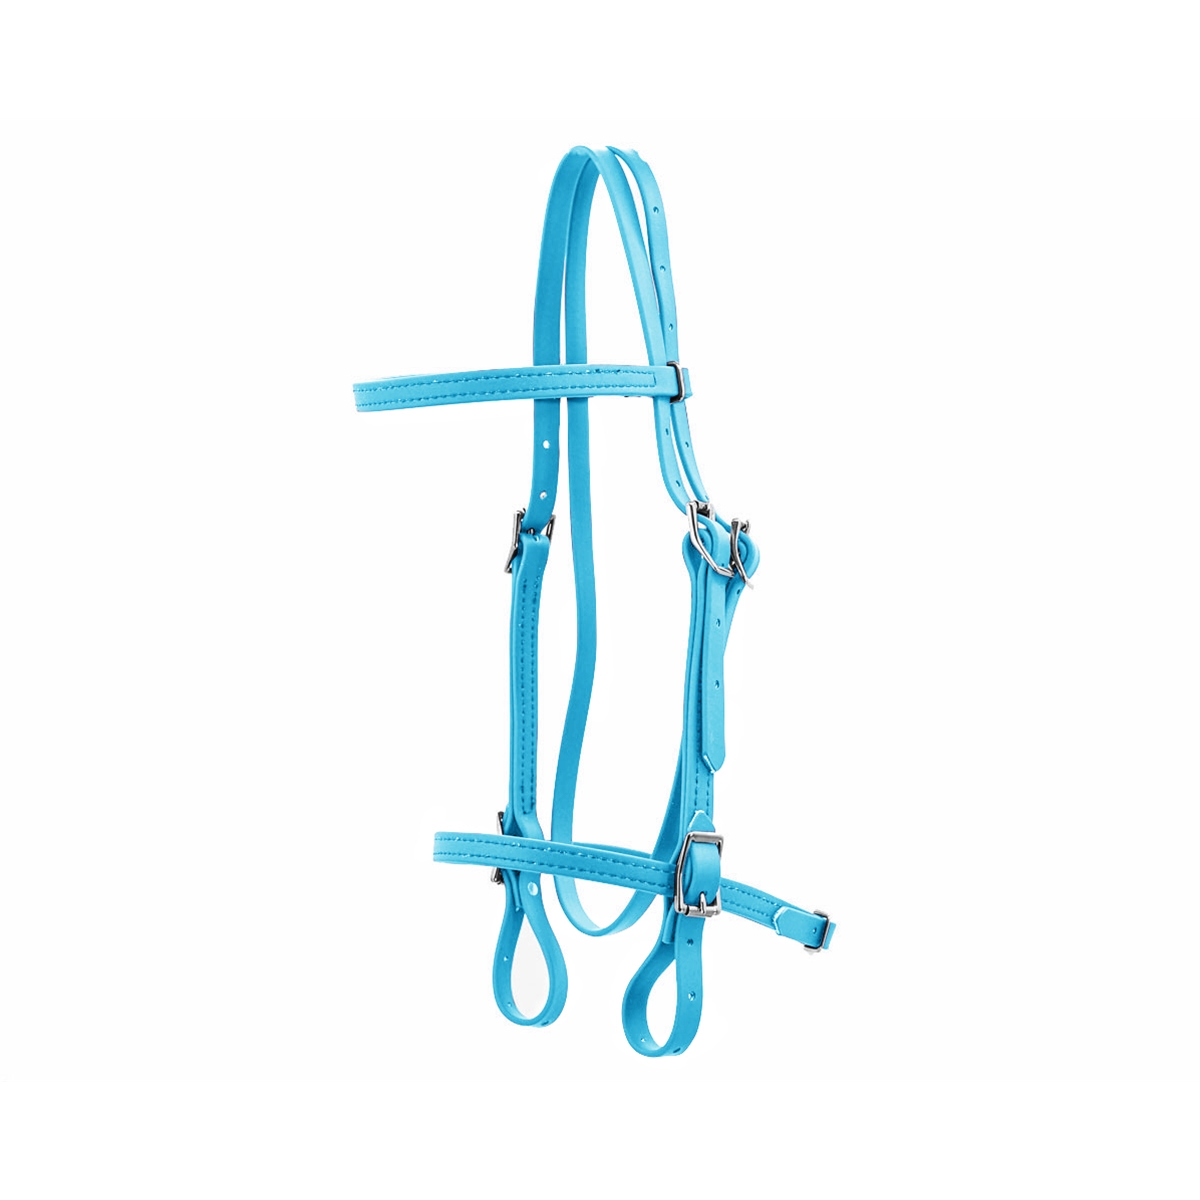 Order English Convert Bridle Made From Beta Biothane From Two Horse Tack